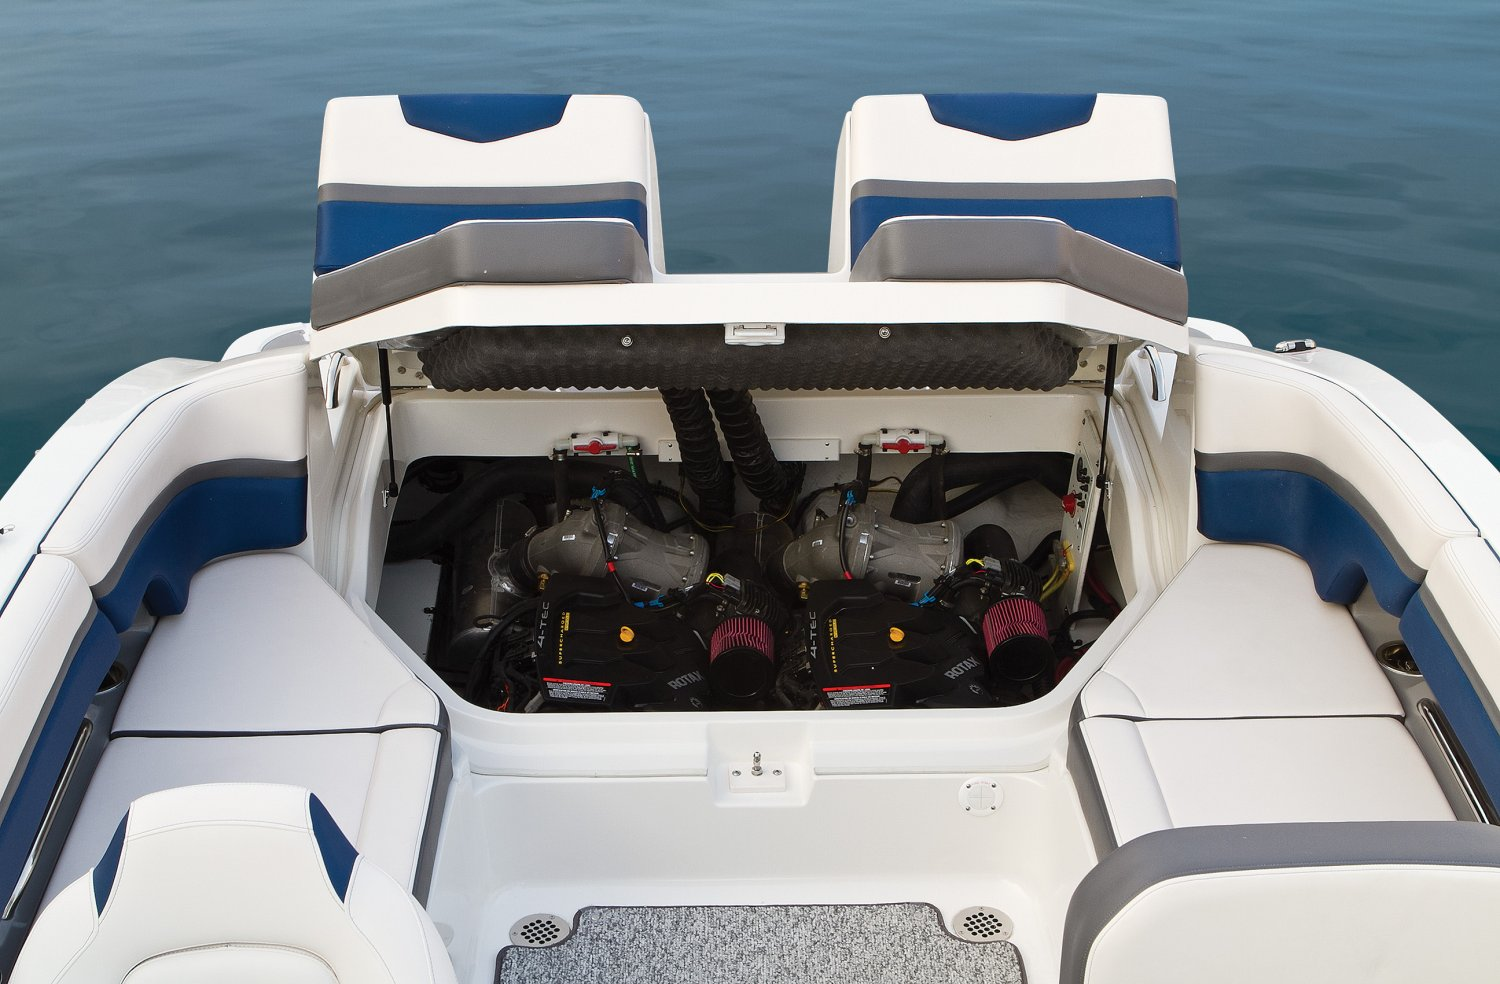 2016 Chaparral boat for sale, model of the boat is 223 VORTEX VR & Image # 9 of 25